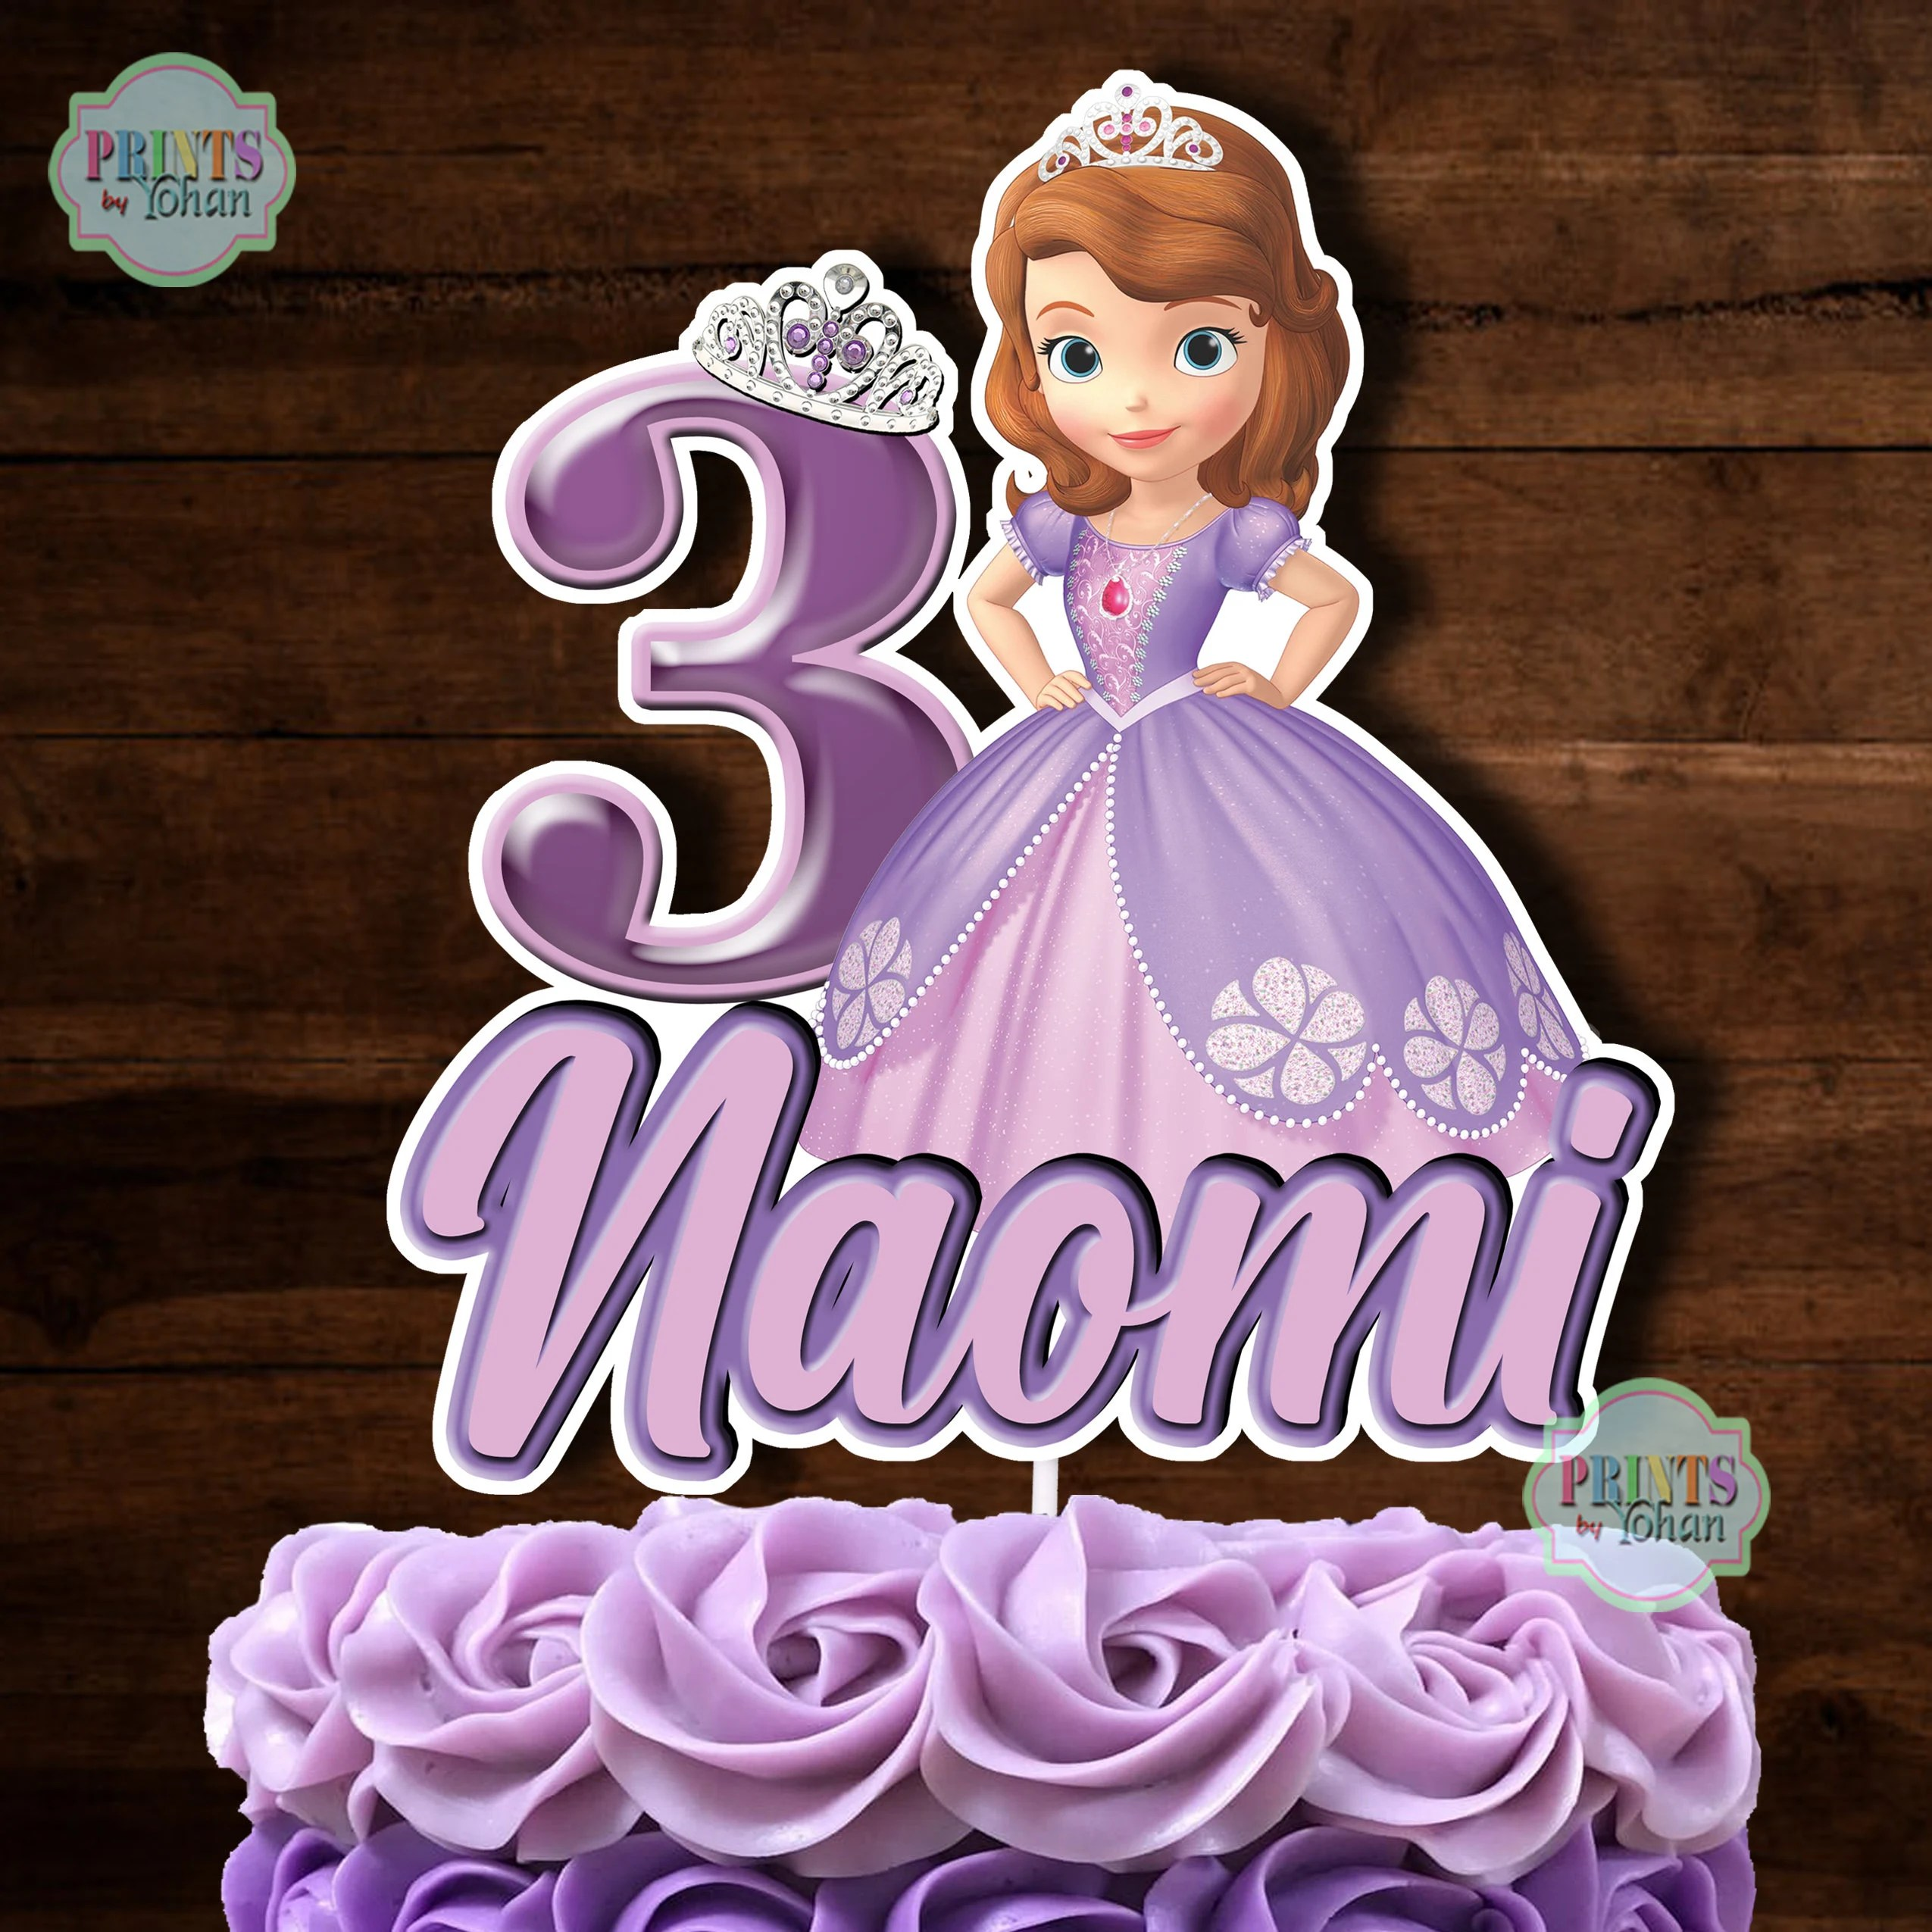 Kids Birthday Party 12pcs Yuesen Sofia Cake Toppers Party Supplies Princess Cupcake Toppers Sofia Happy Birthday Cake Decorations For Girls Frozen Fans Toys Games Decorations Clinicadelpieaitanalopez Com